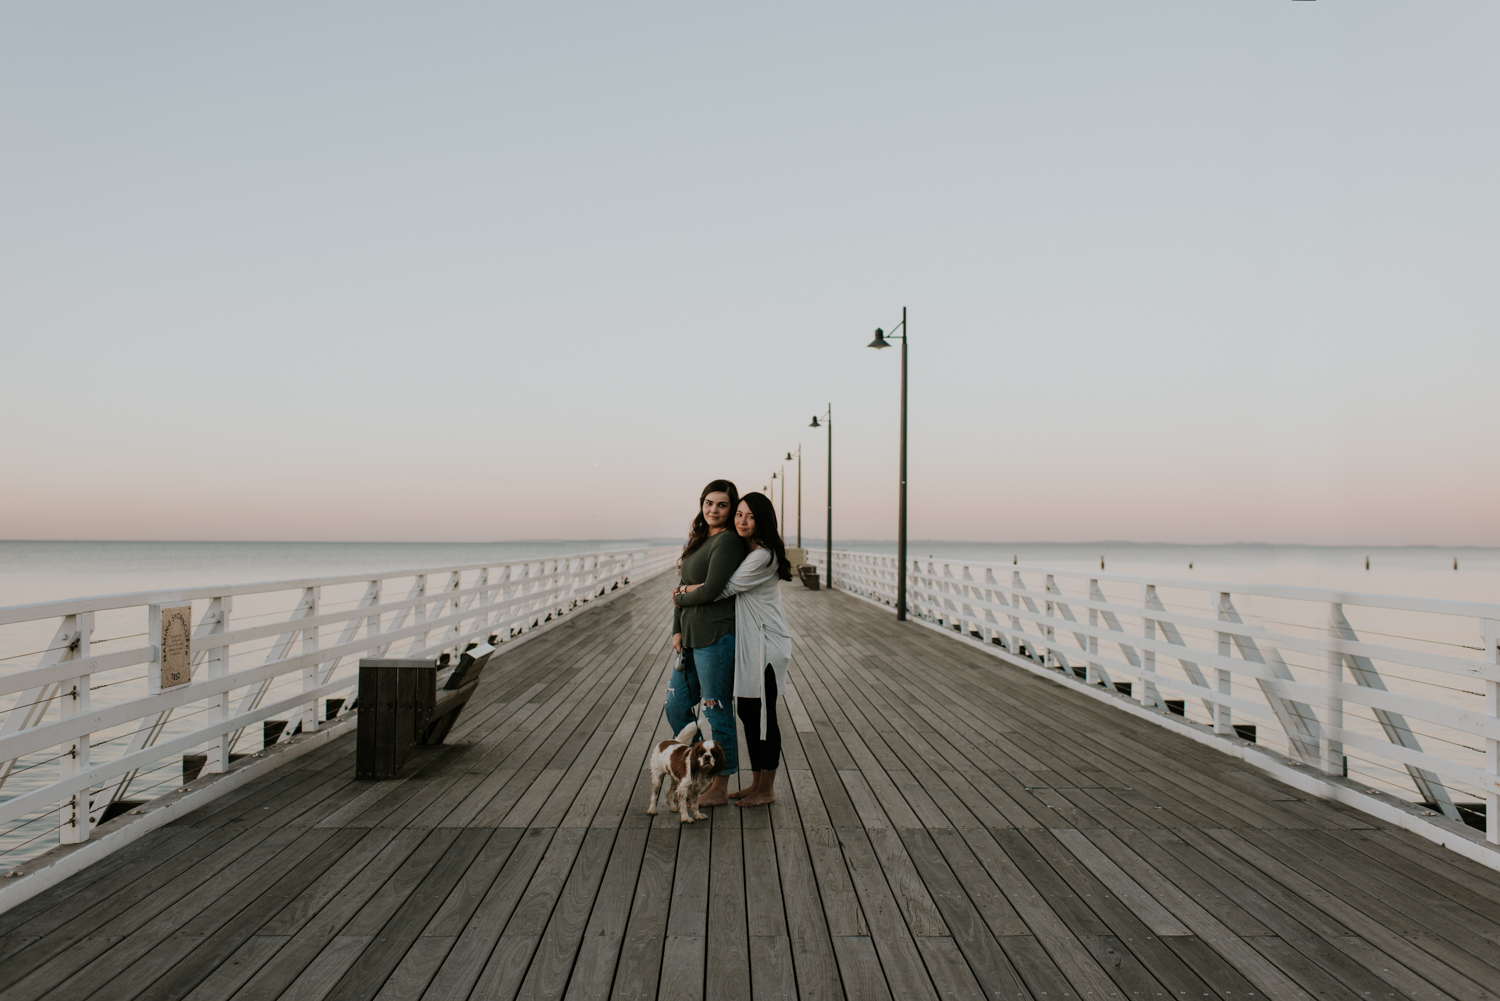 Brisbane Lesbian Wedding Photographer | Same-Sex Engagement-Elopement Photography-26.jpg